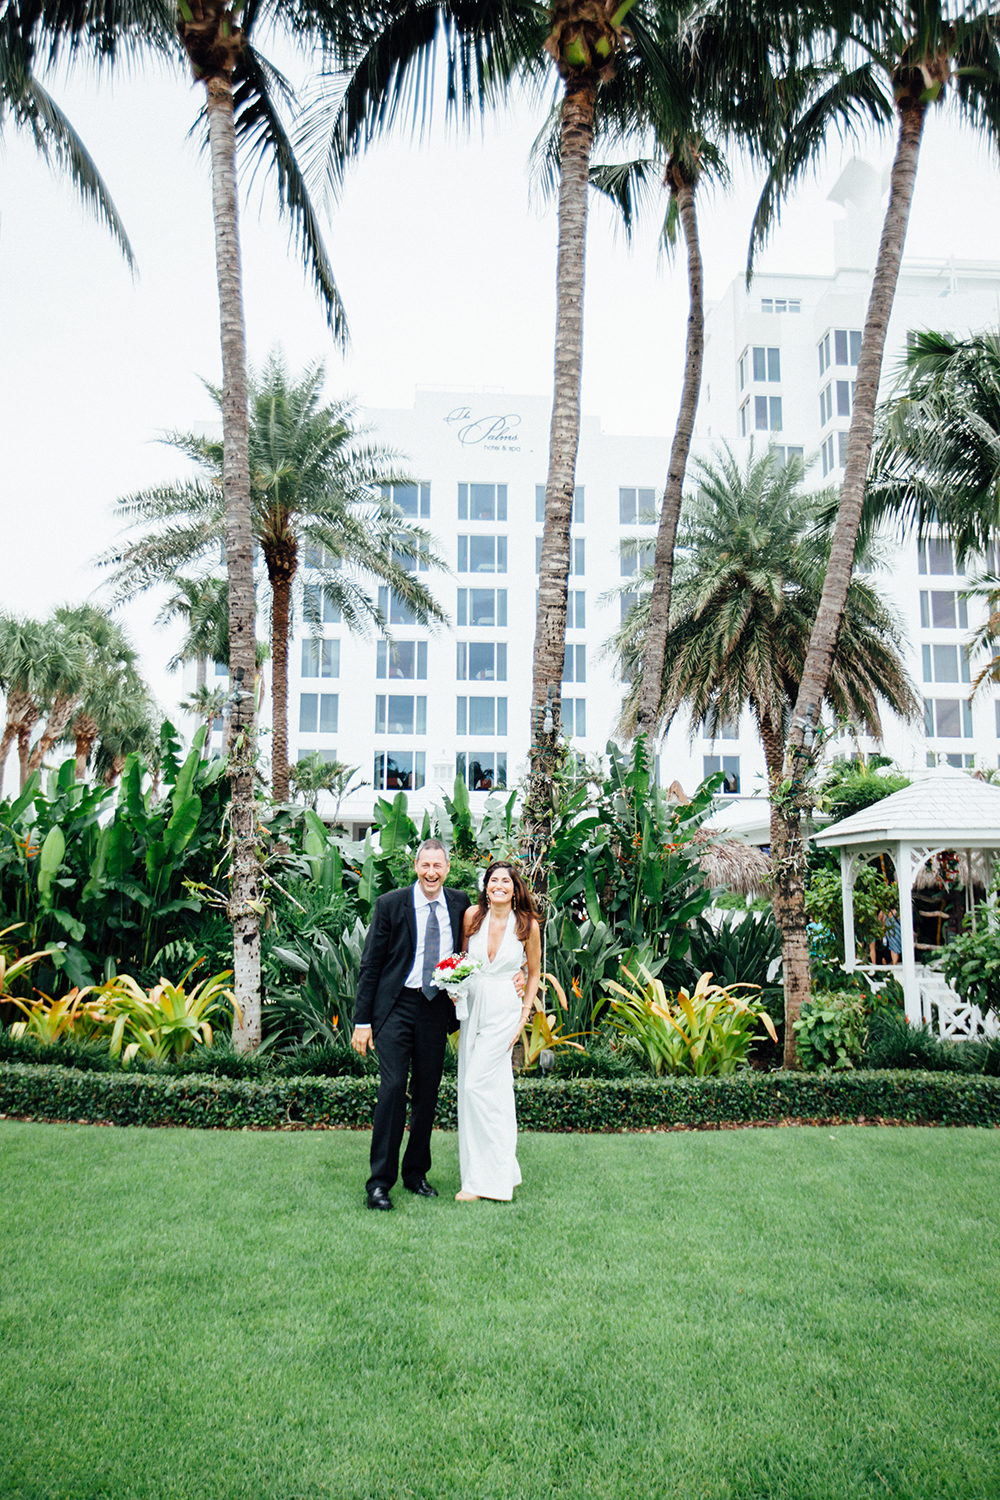 Everything was perfect – incredible customer service, attention to detail, deep knowledge and impeccable work. Thank you from the bottom of our hearts, you have made our special day last forever with your beautiful photos. - Frances & Roberto